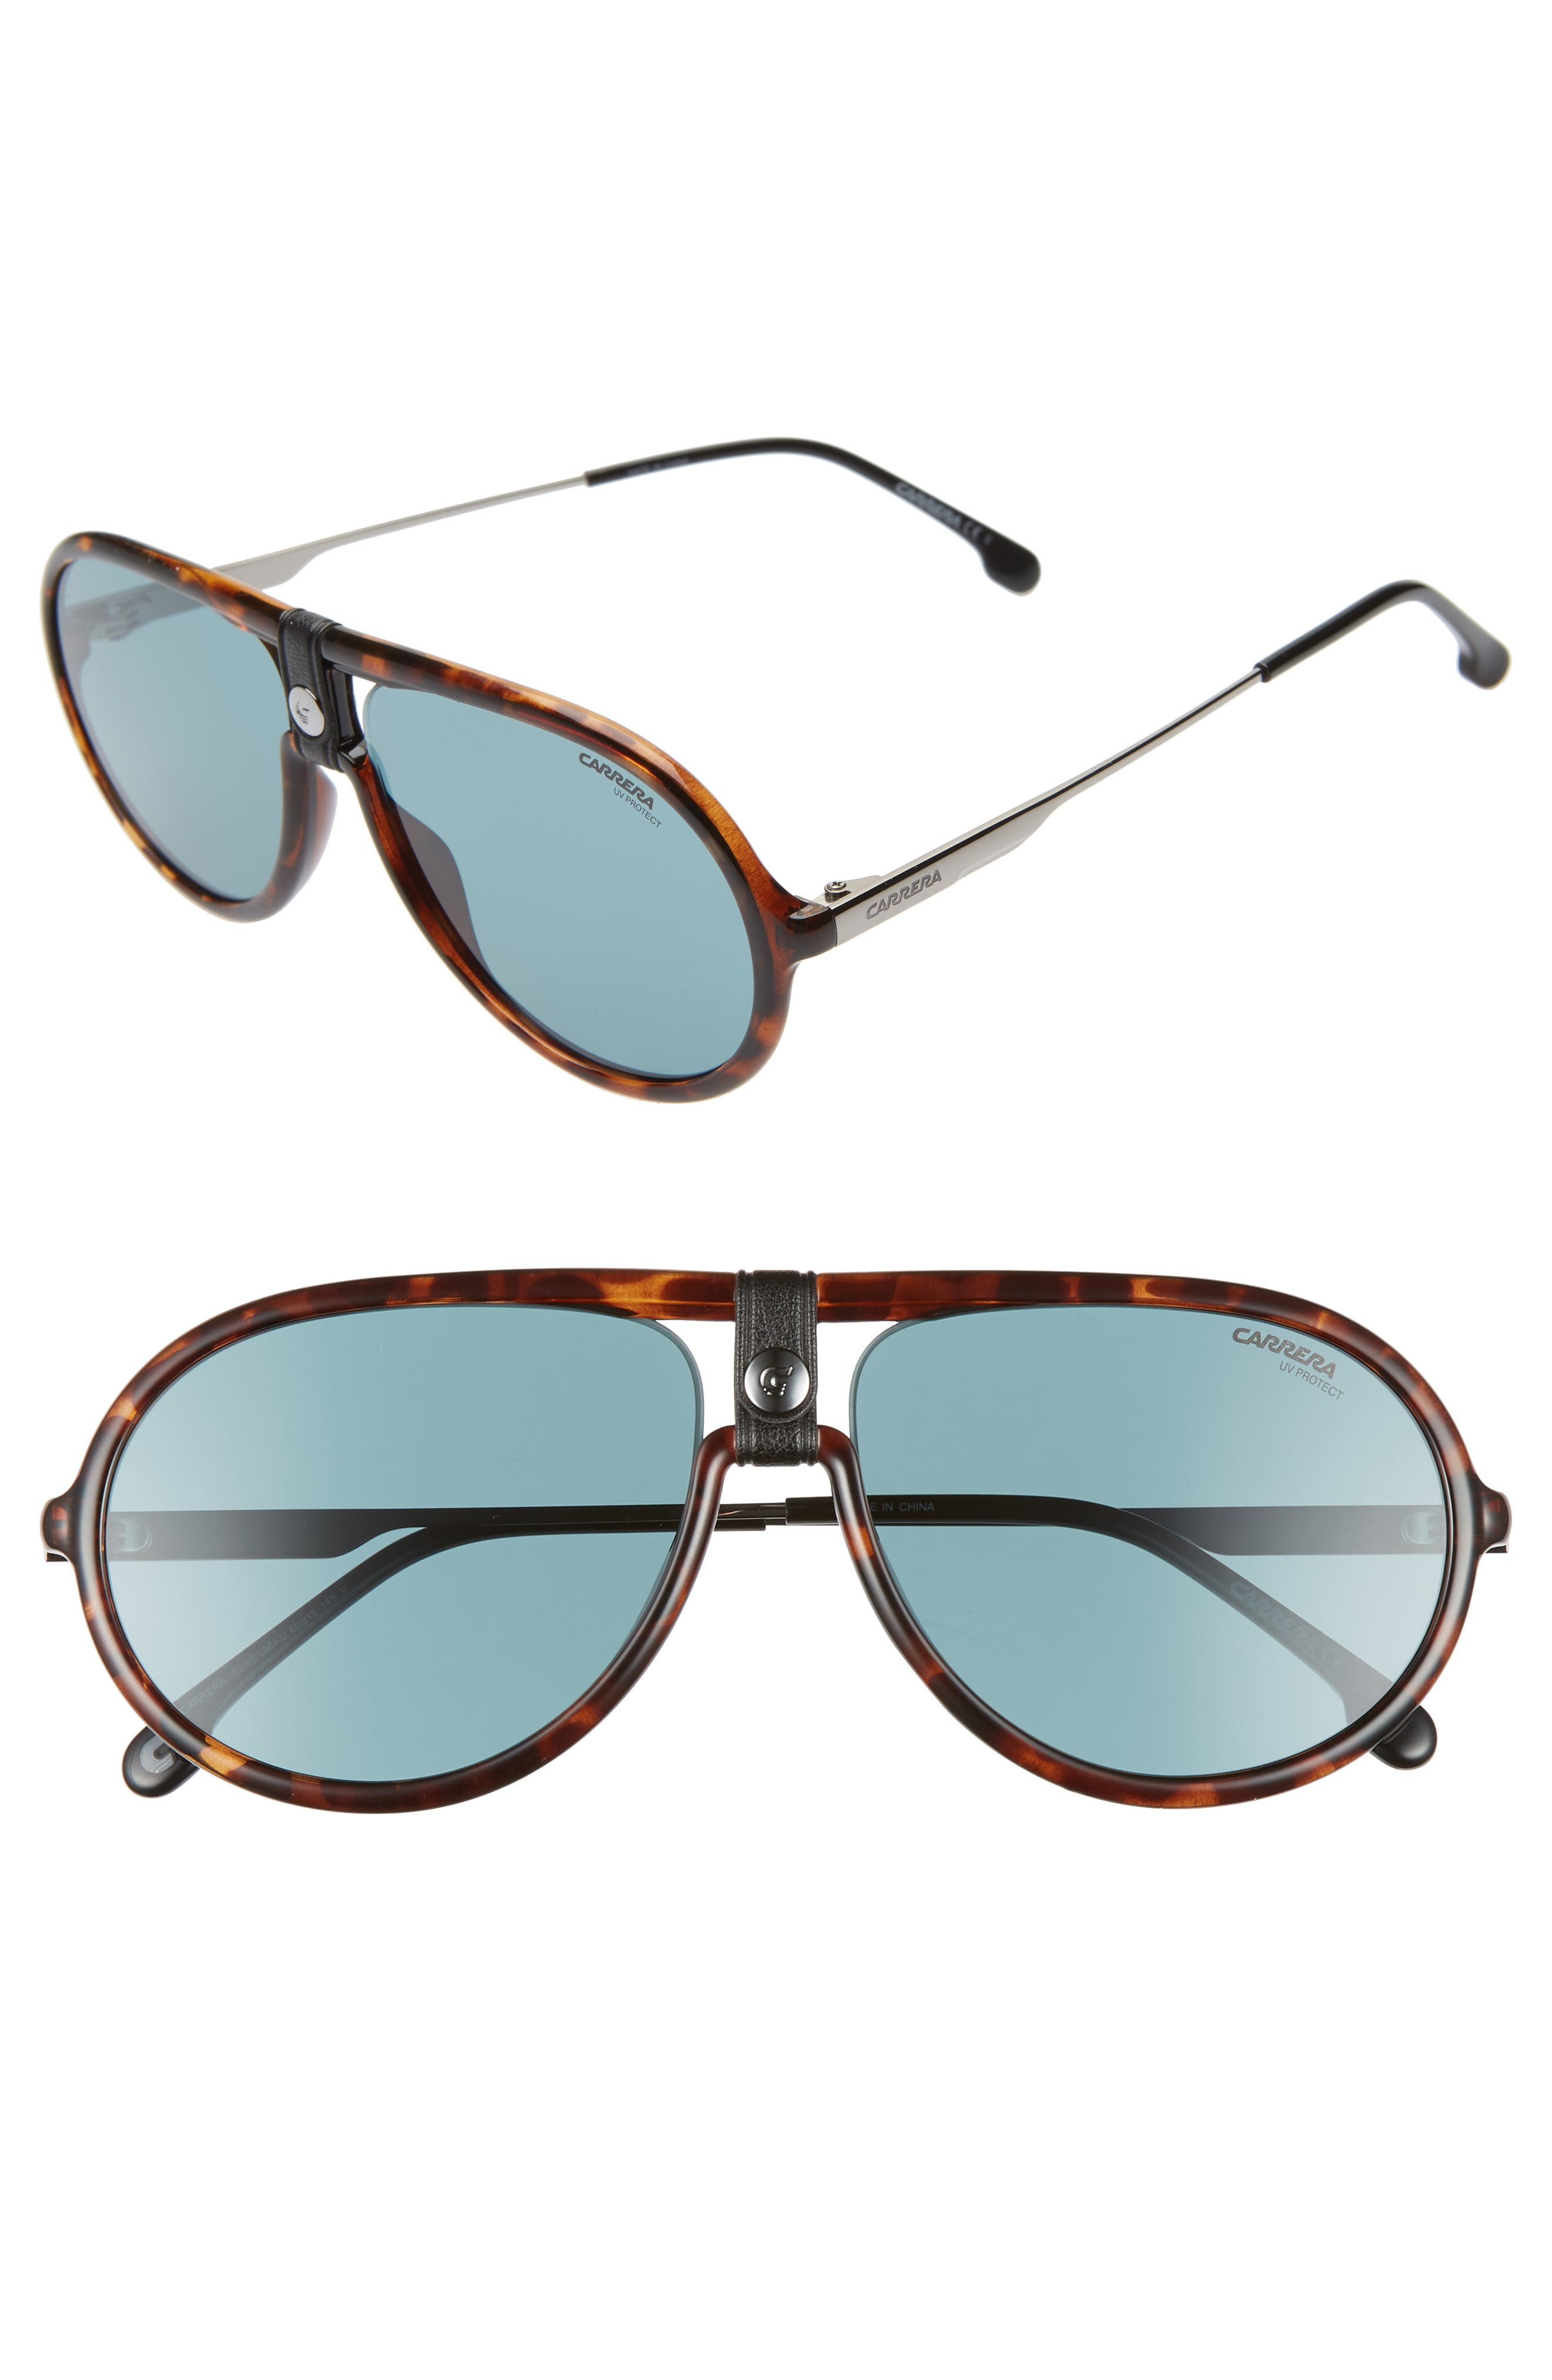 Carrera Eyewear 60Mm Polarized Aviator Sunglasses - Dark Havana